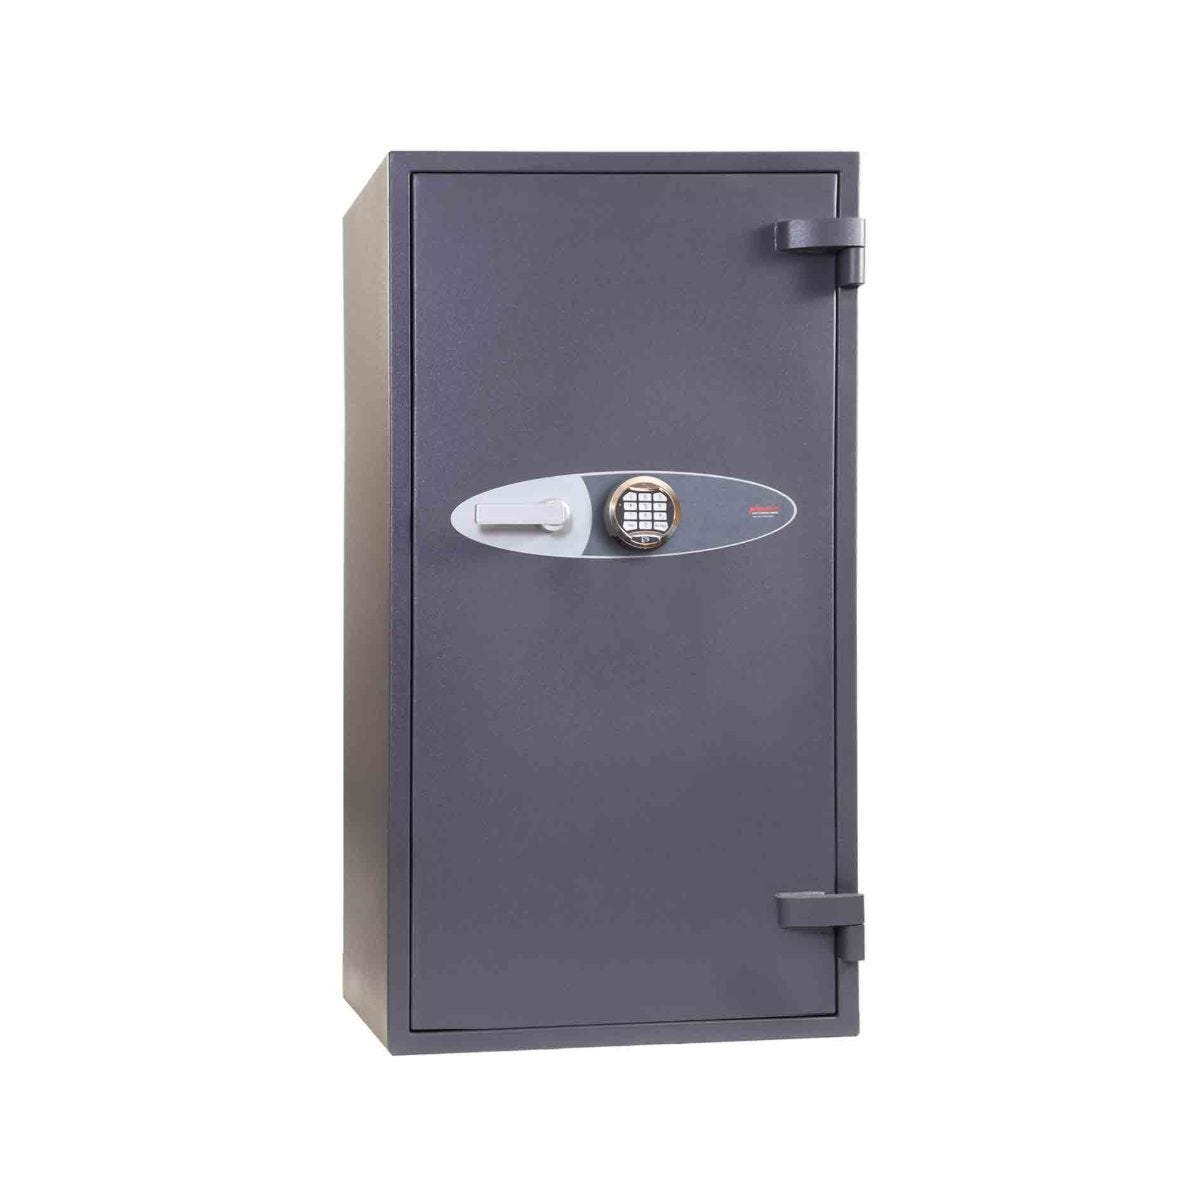 Phoenix Neptune HS1055E High Security Euro Grade 1 Safe with Electronic Lock Size 5